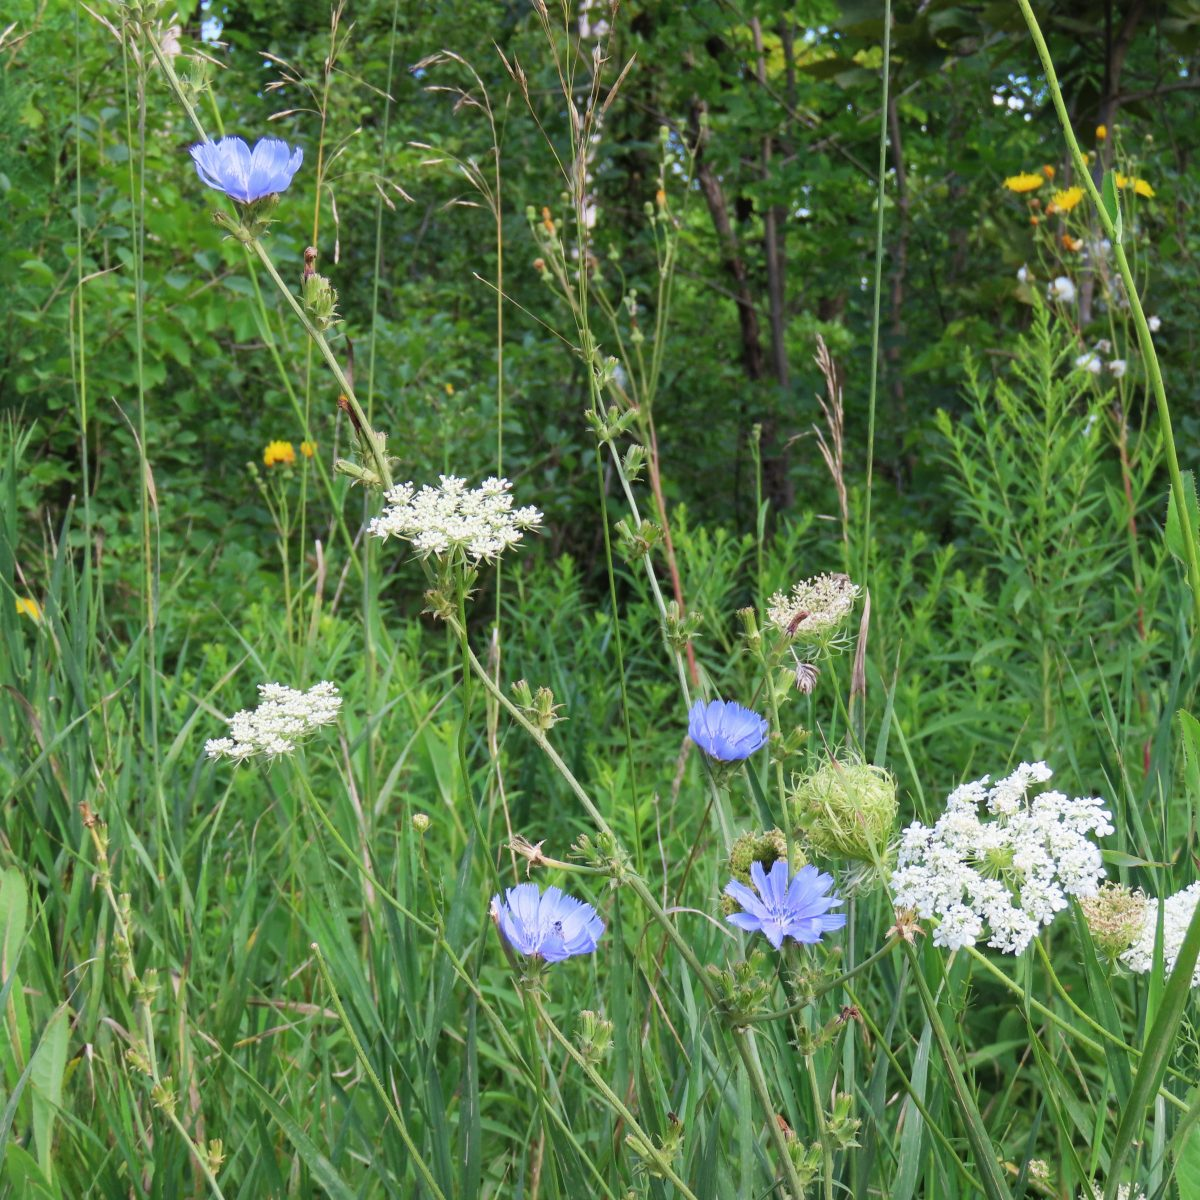 Chicory blossoms and Queen Anne's Lace